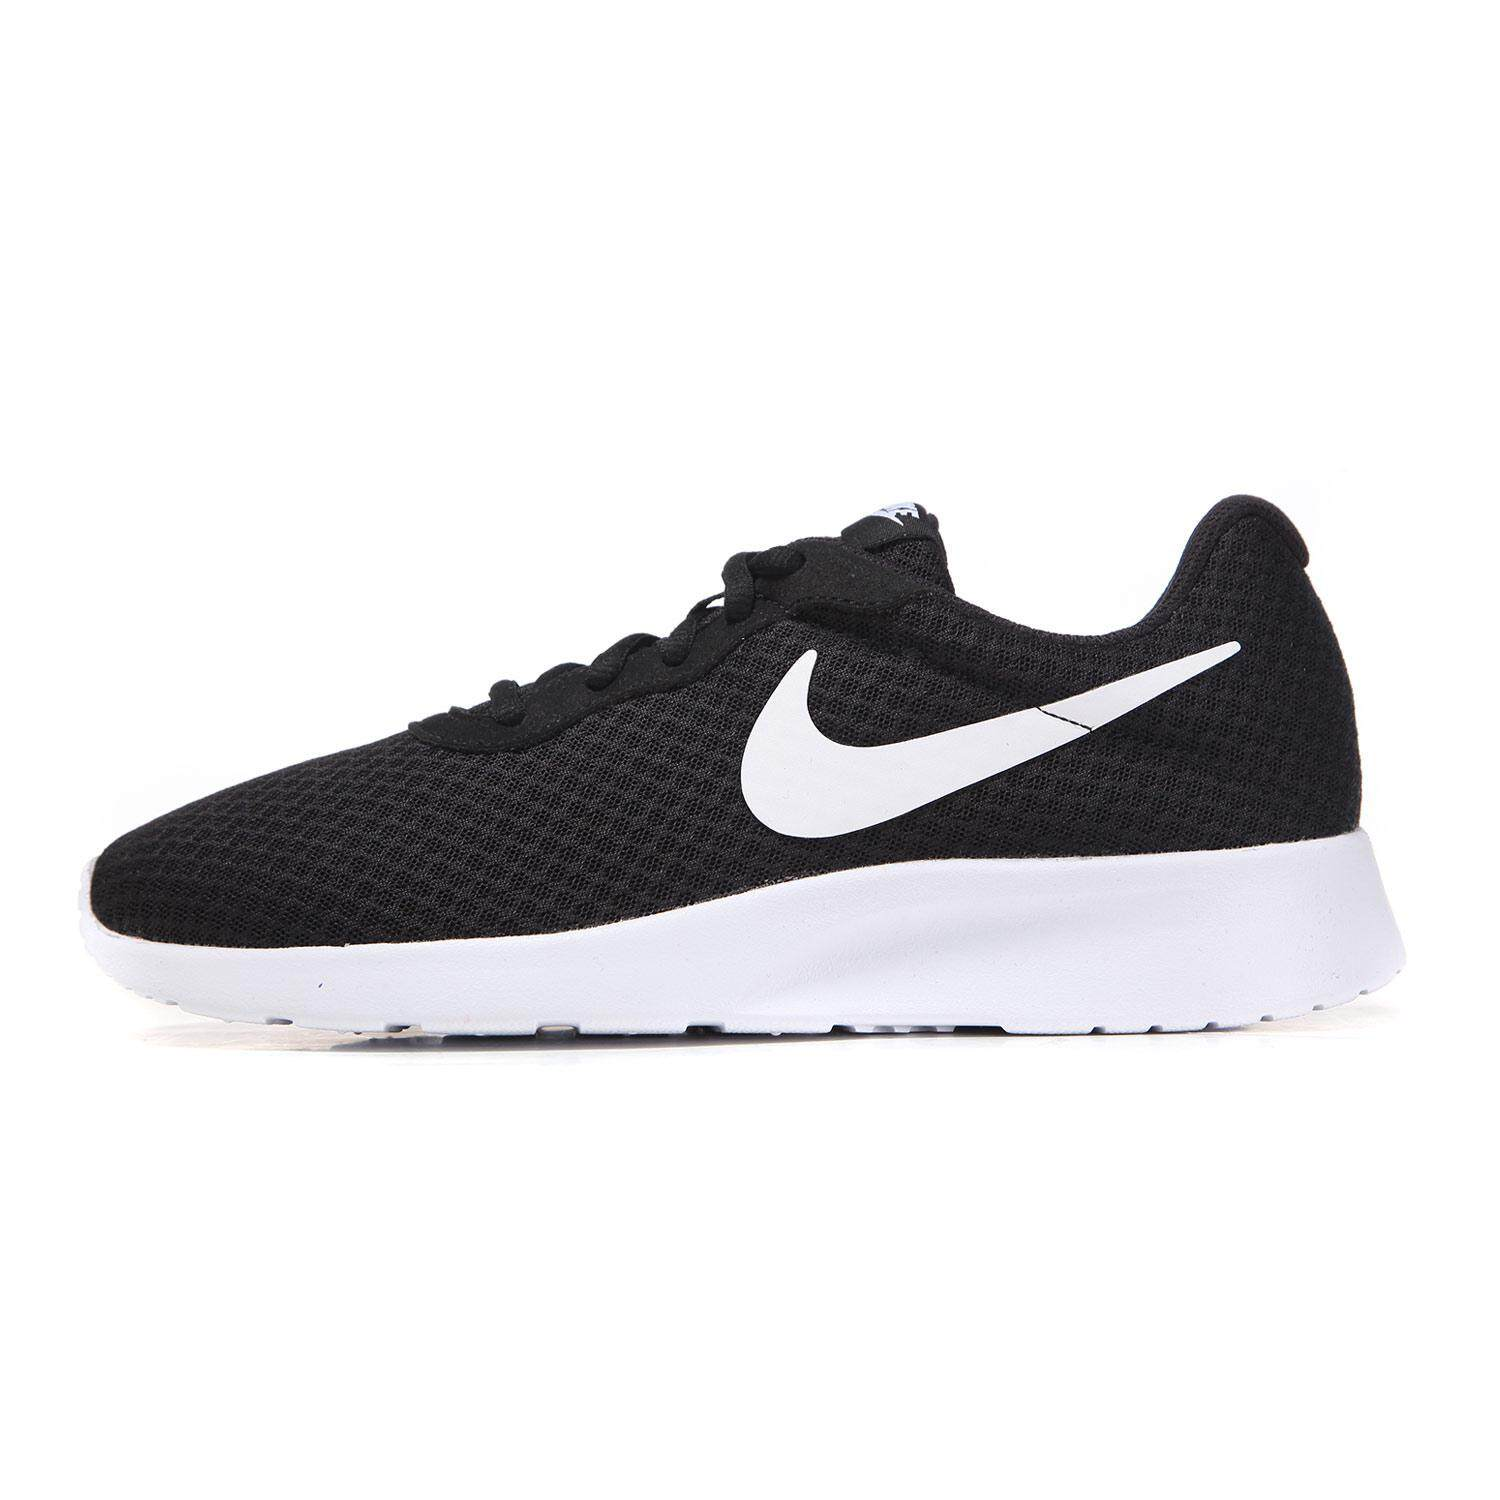 95a3bb0753a NIKE TANJUN men s shoes women s shoes sports casual light mesh running  shoes 812654-010 812654